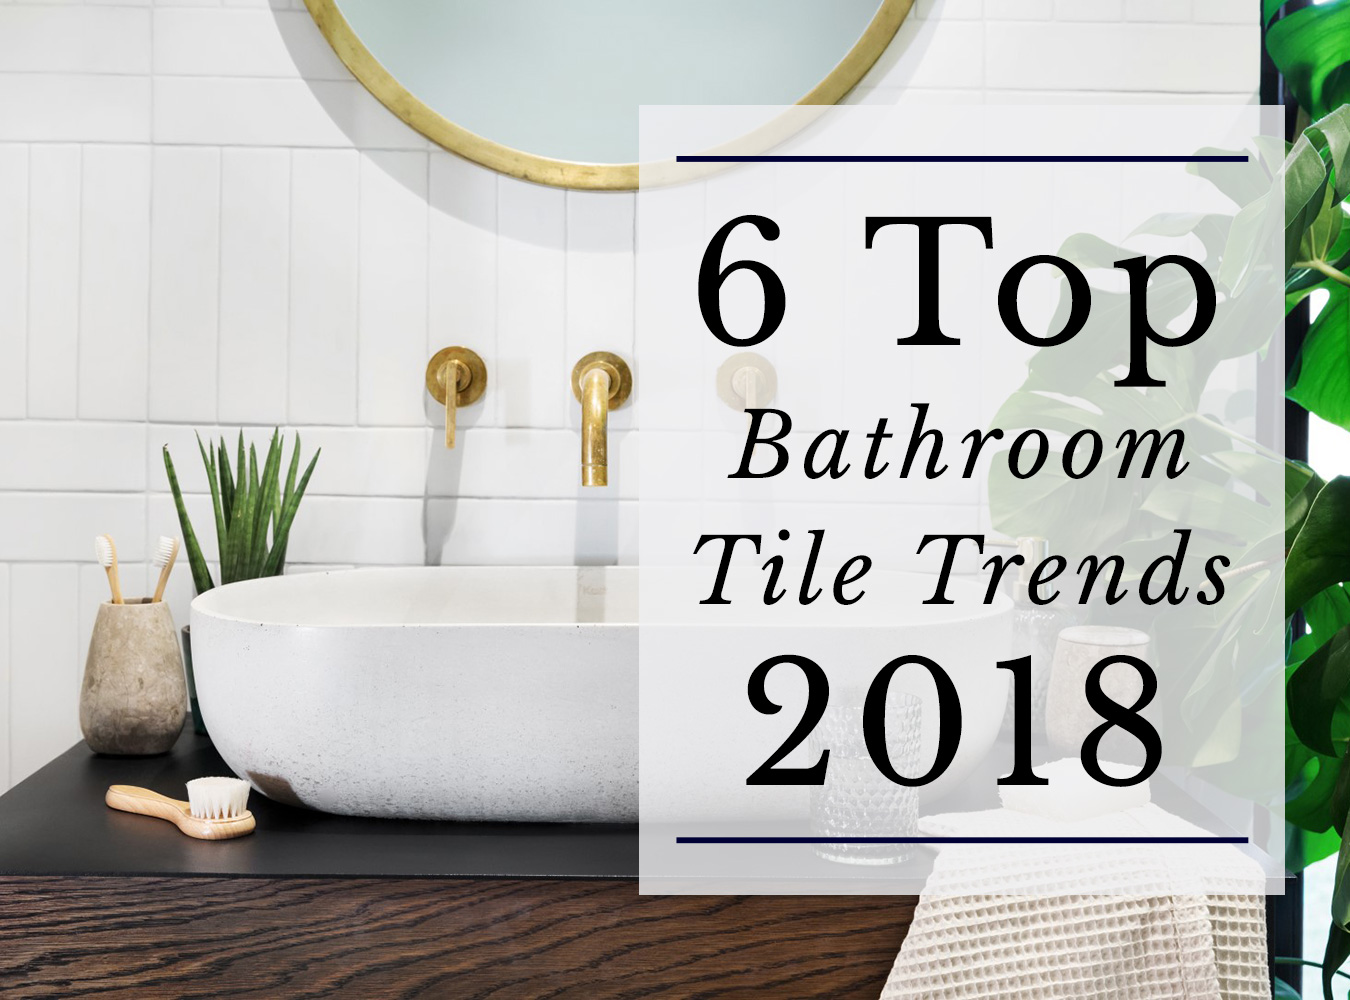 The 6 top bathroom tile trends of 2018 for New bathroom tile trends